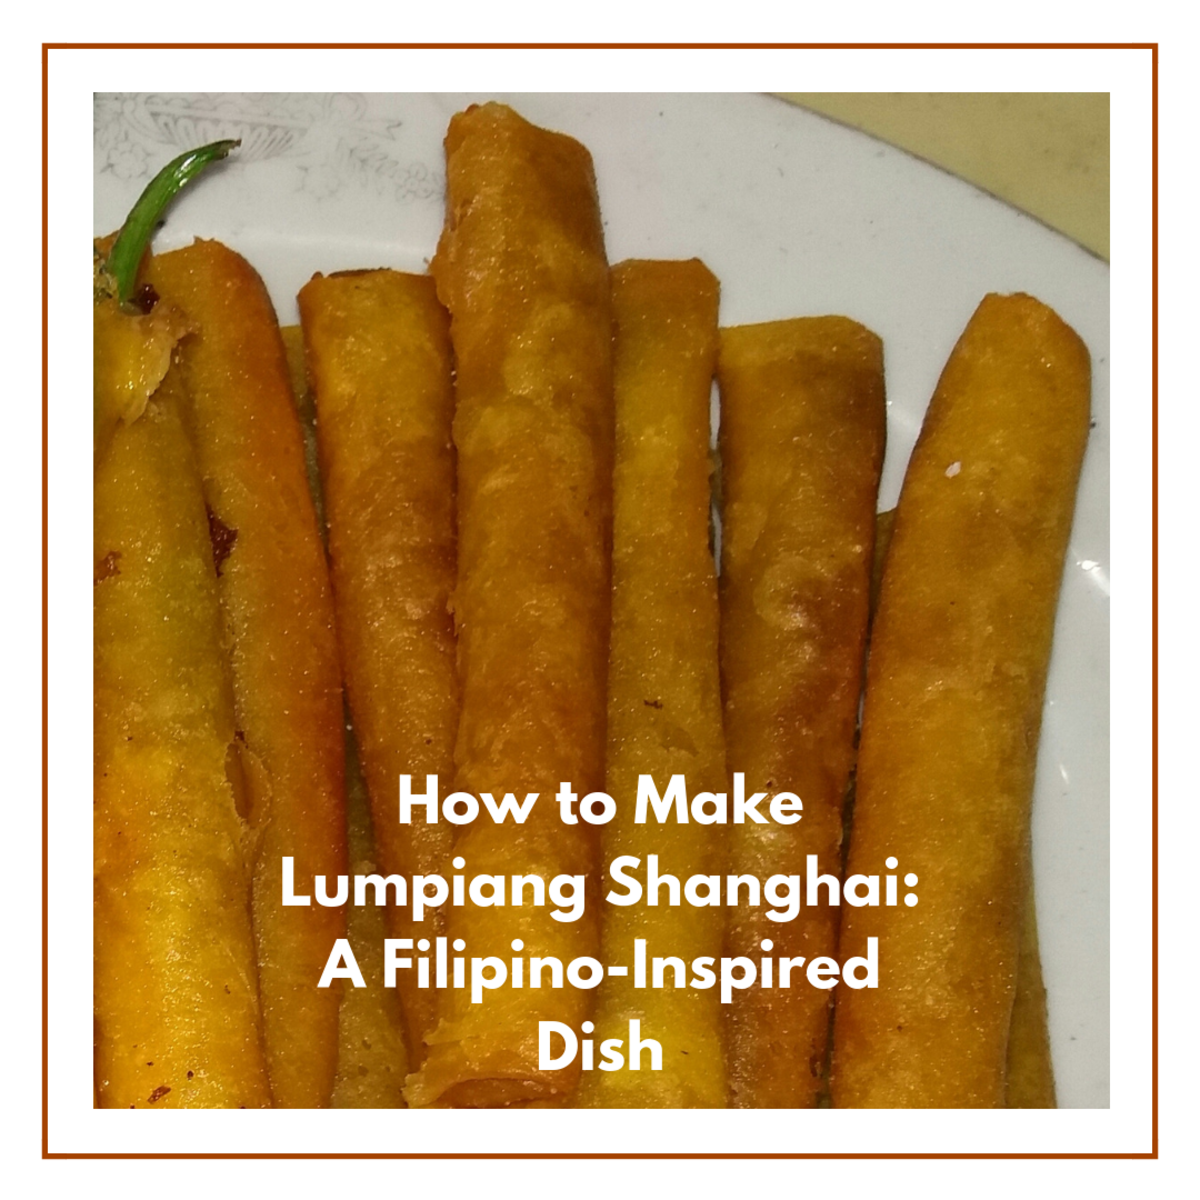 How to Make Lumpiang Shanghai: A Filipino-Inspired Dish